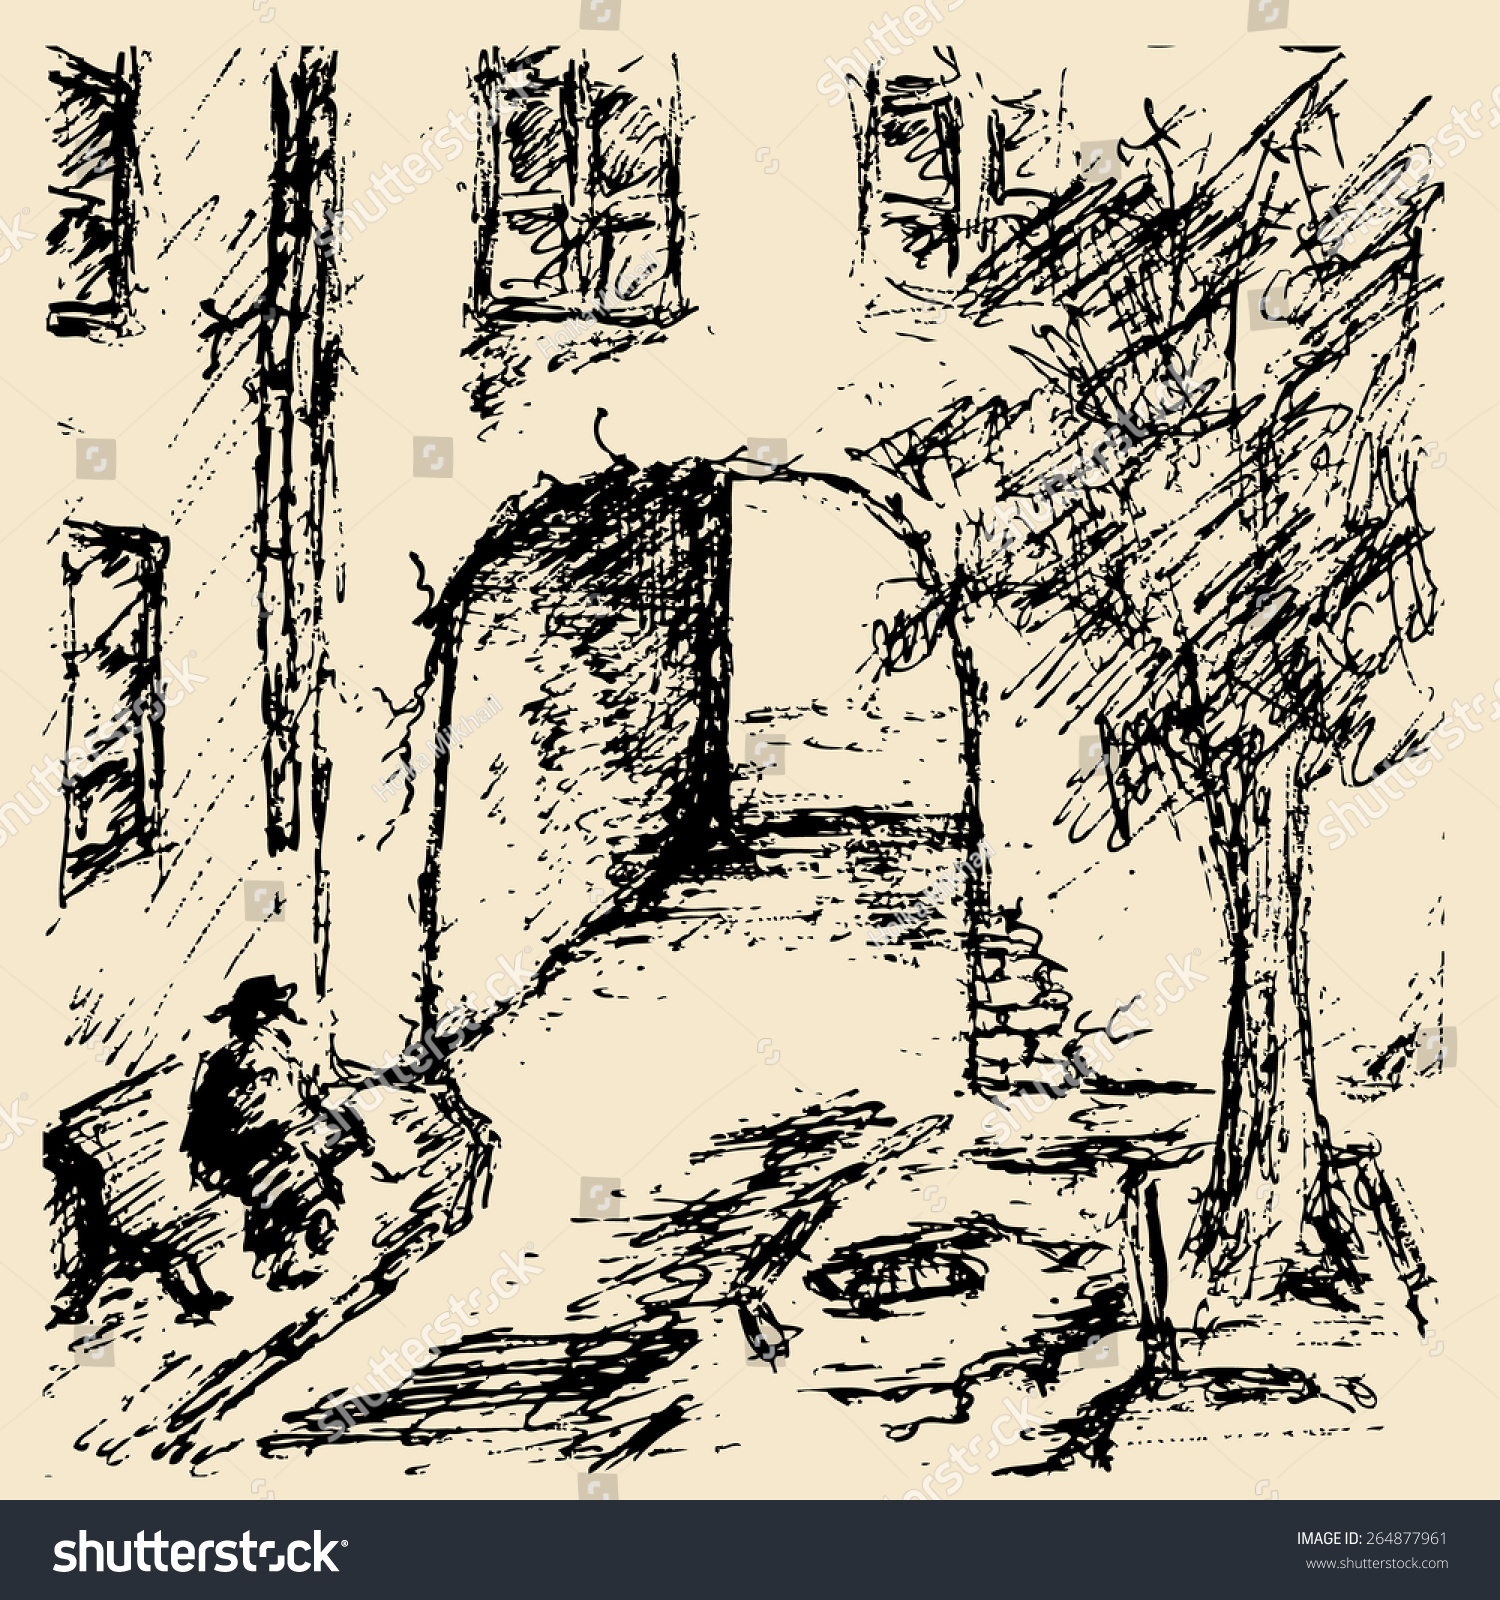 A man sits alone on a bench in the courtyard of the old house vector